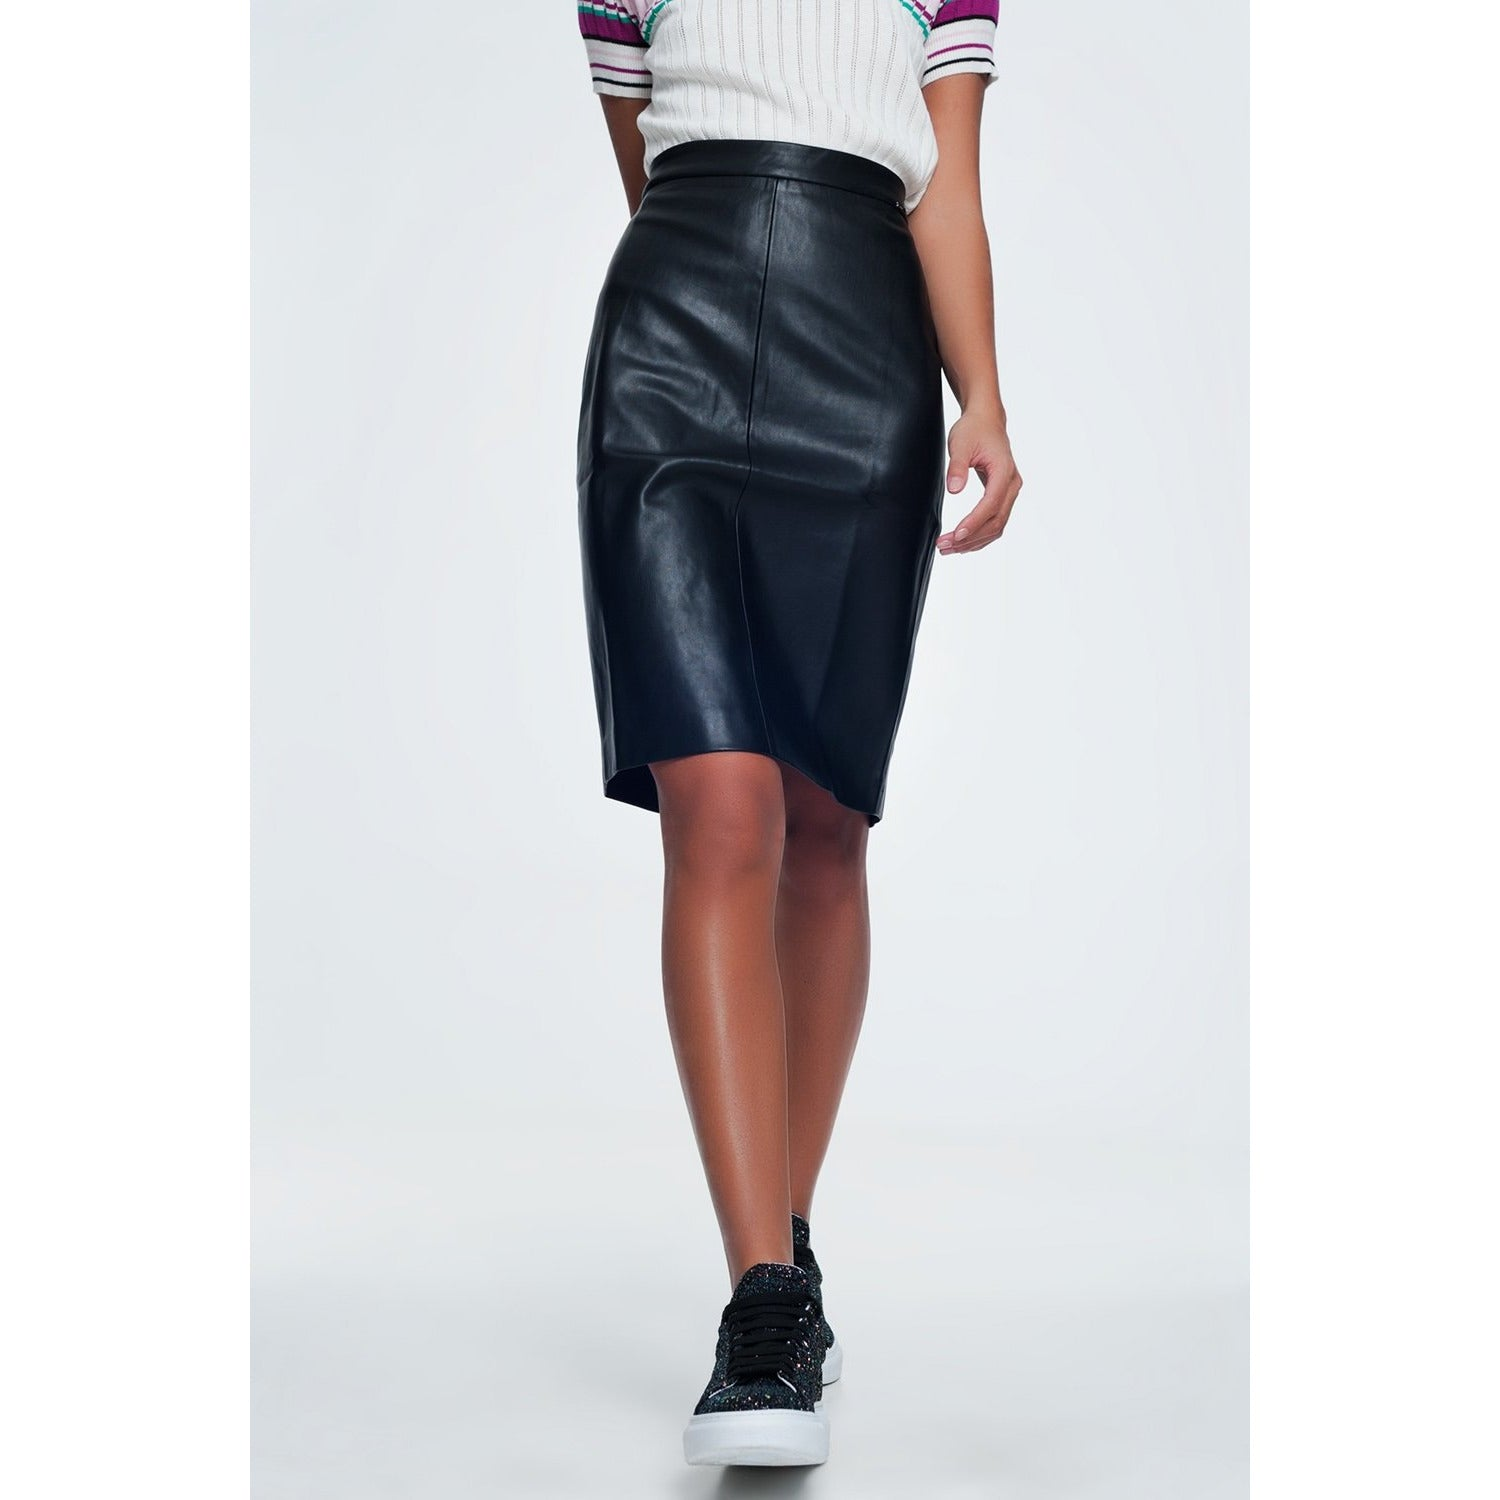 Black Faux Leather Pencil Skirt - Miraposa